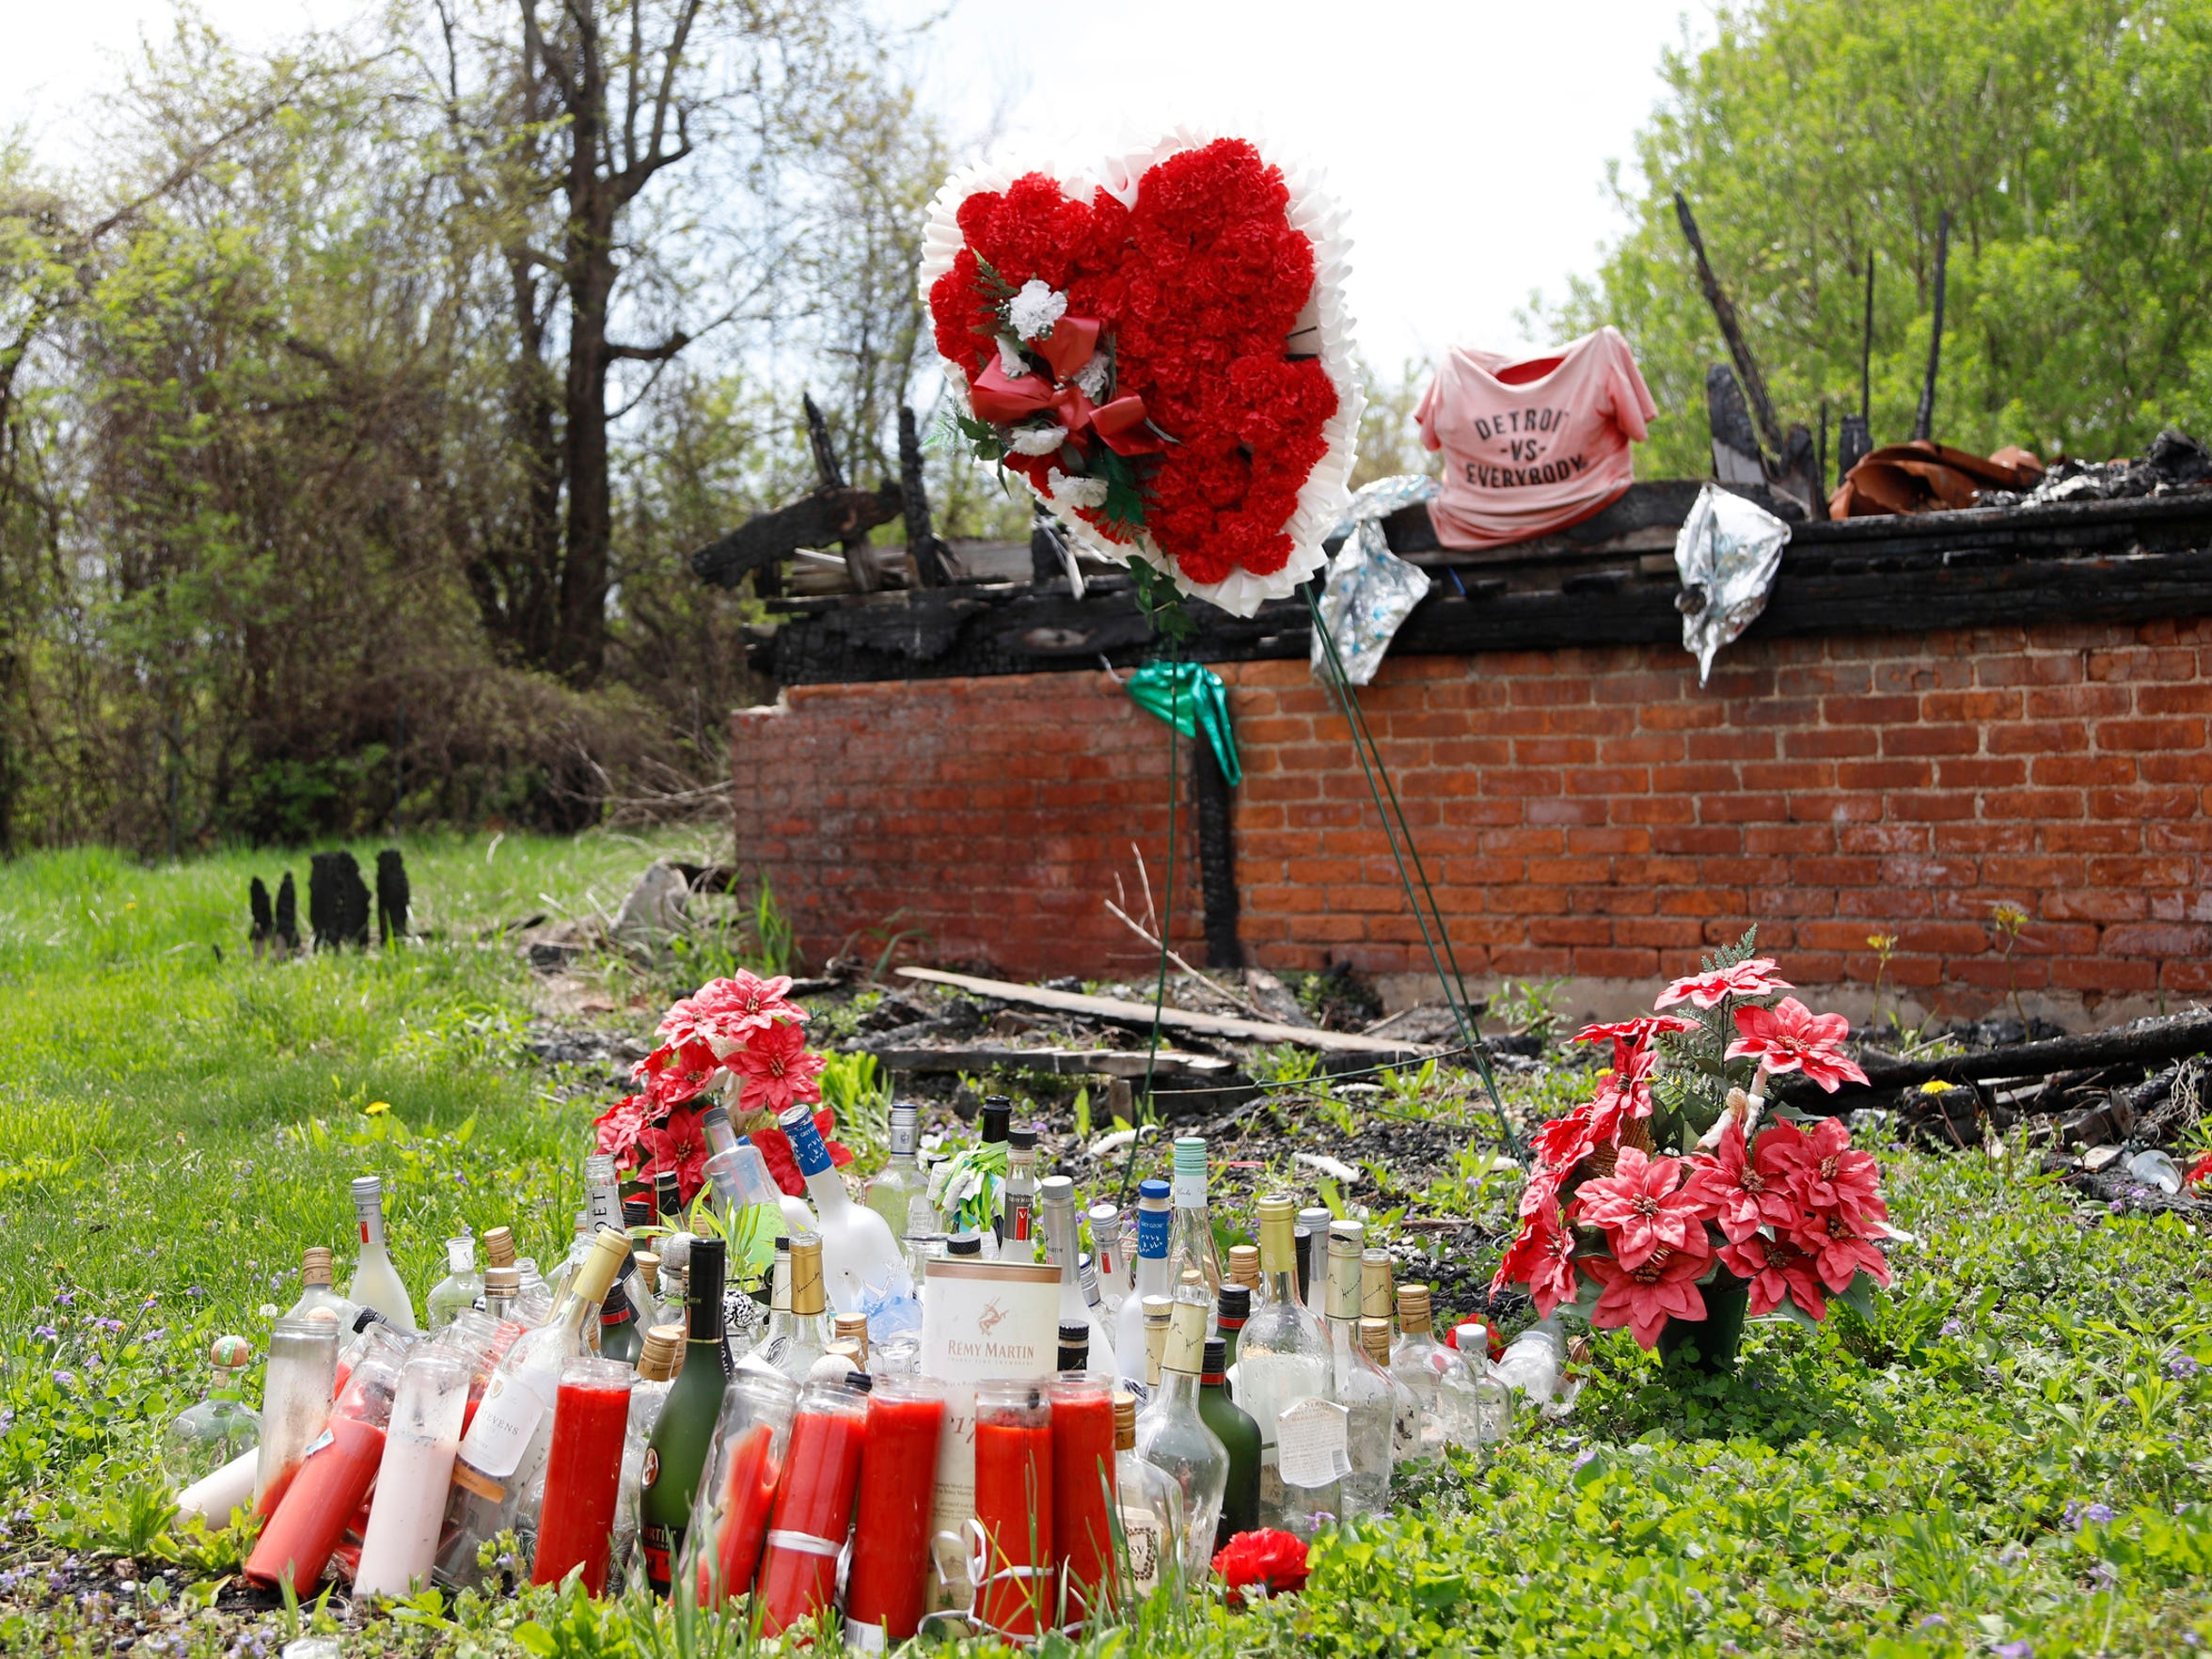 A shrine outside of 5797 Garland Street, where Jevonta Malone, 26, was shot and killed in July 2016. (Photo taken May 9, 2018)